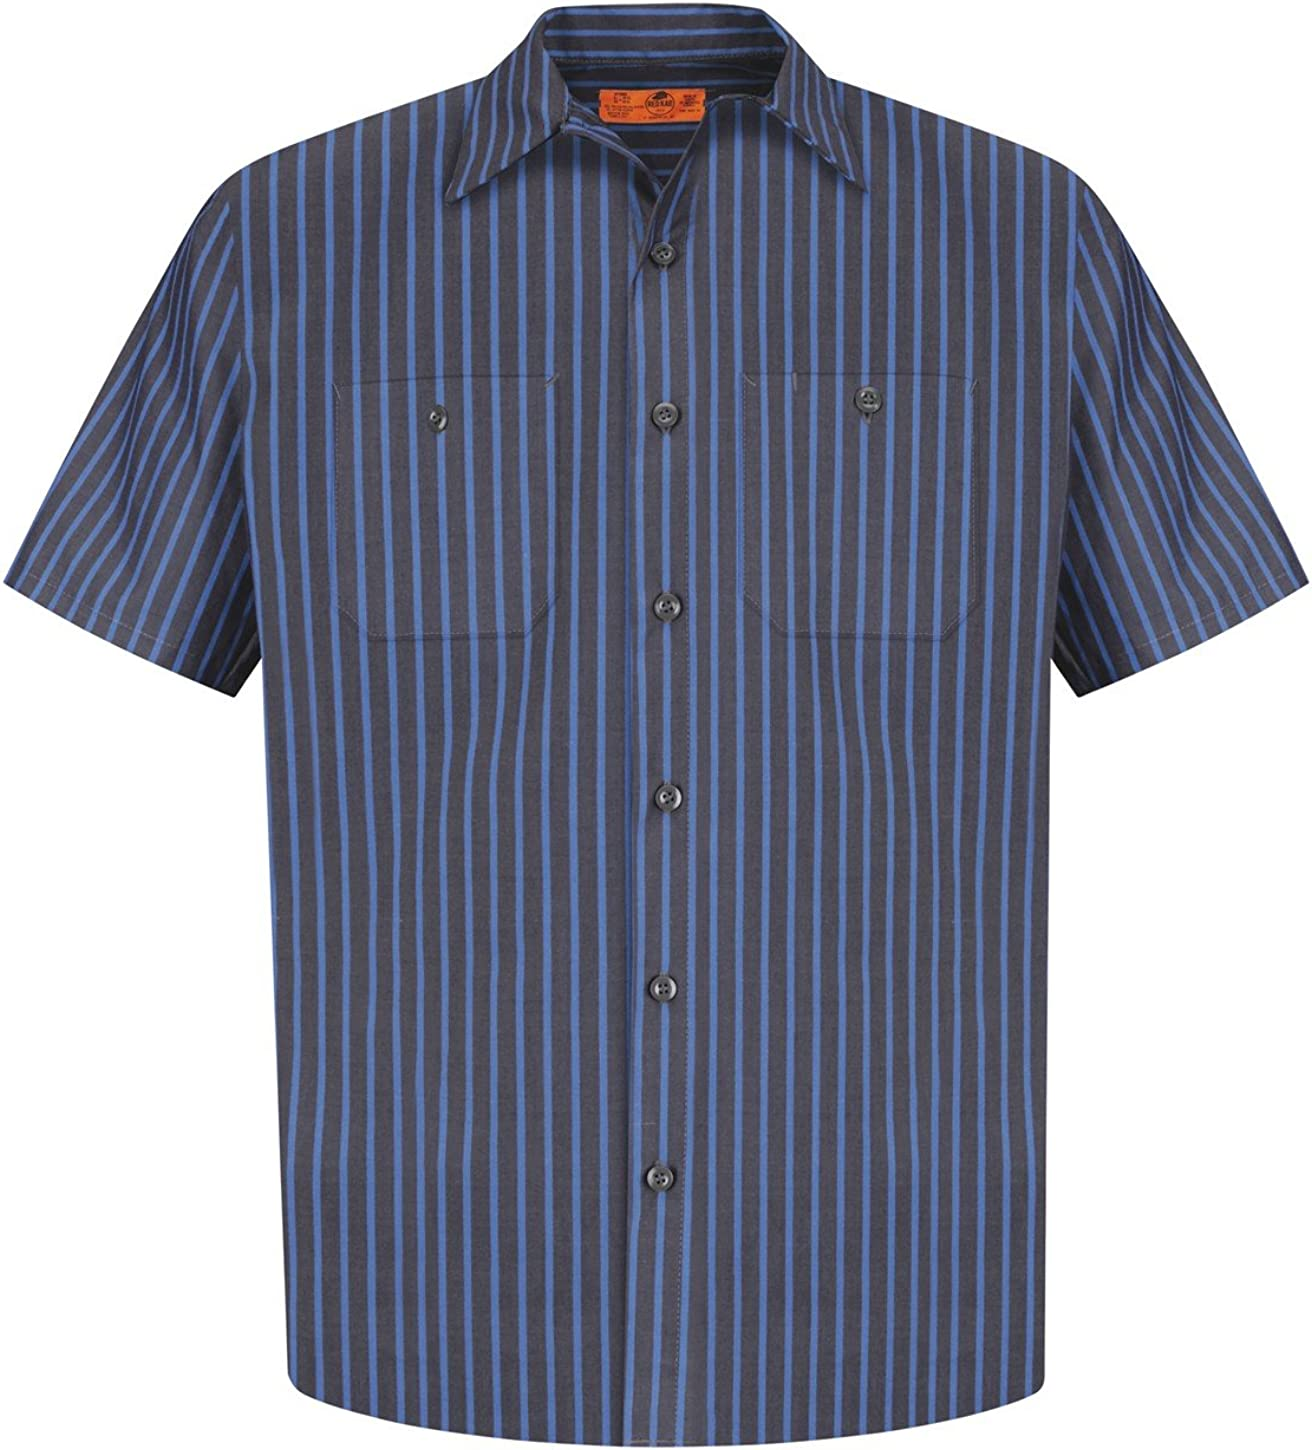 Red Kap Oakland Sale price Mall Mens Short Sleeve Shirt Striped Work Industrial